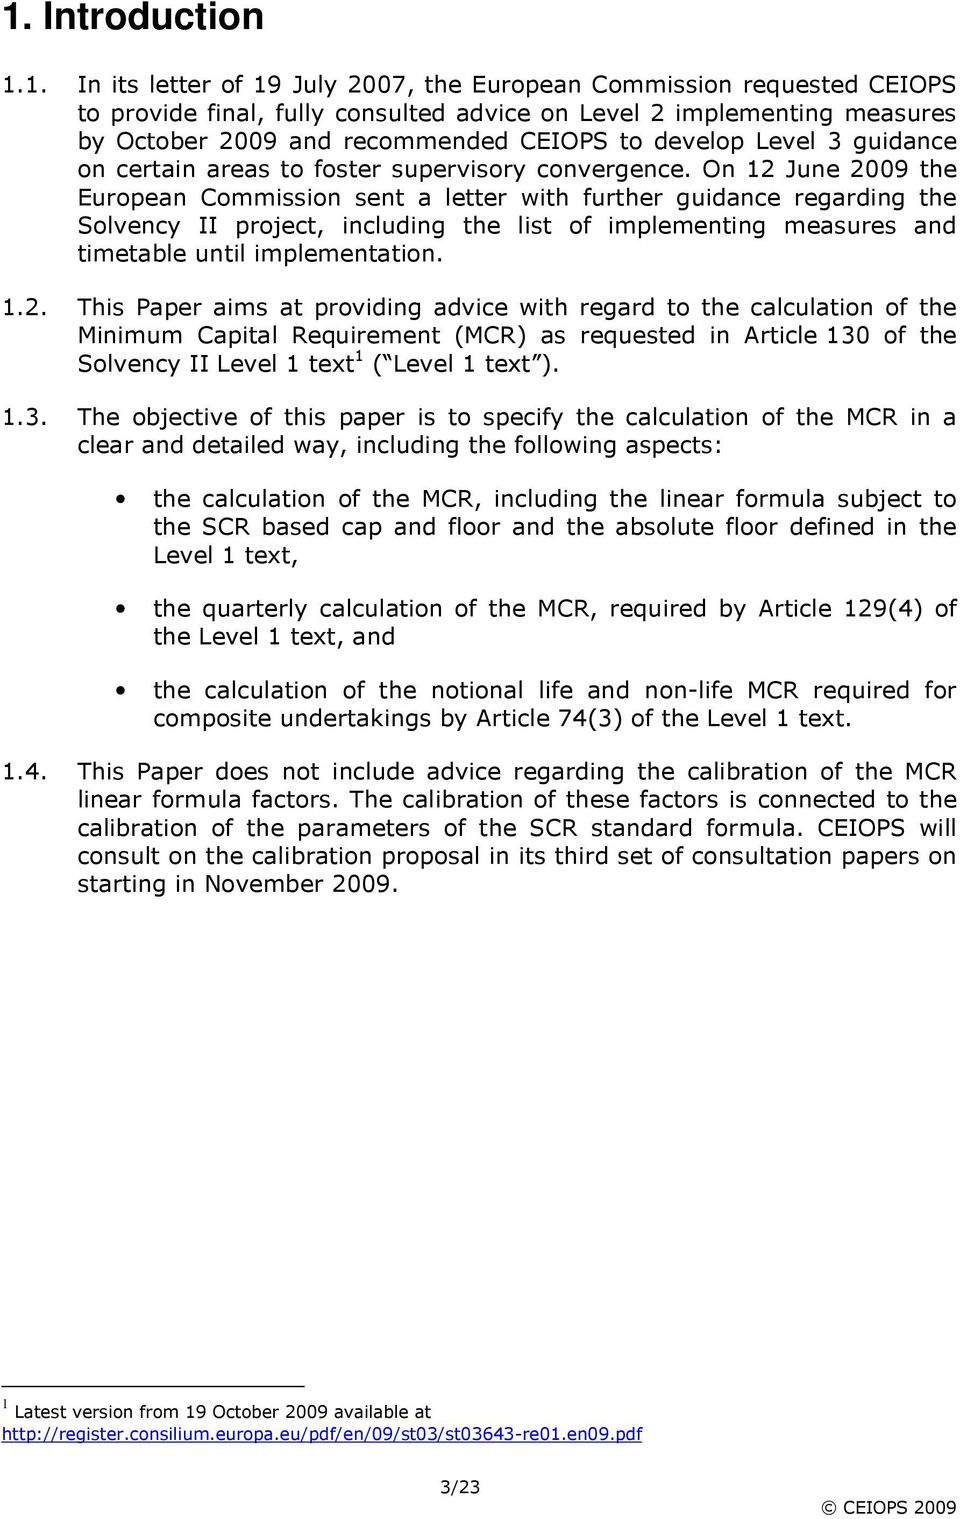 On 12 June 2009 the European Commission sent a letter with further guidance regarding the Solvency II project, including the list of implementing measures and timetable until implementation. 1.2. This Paper aims at providing advice with regard to the calculation of the Minimum Capital Requirement (MCR) as requested in Article 130 of the Solvency II Level 1 text 1 ( Level 1 text ).